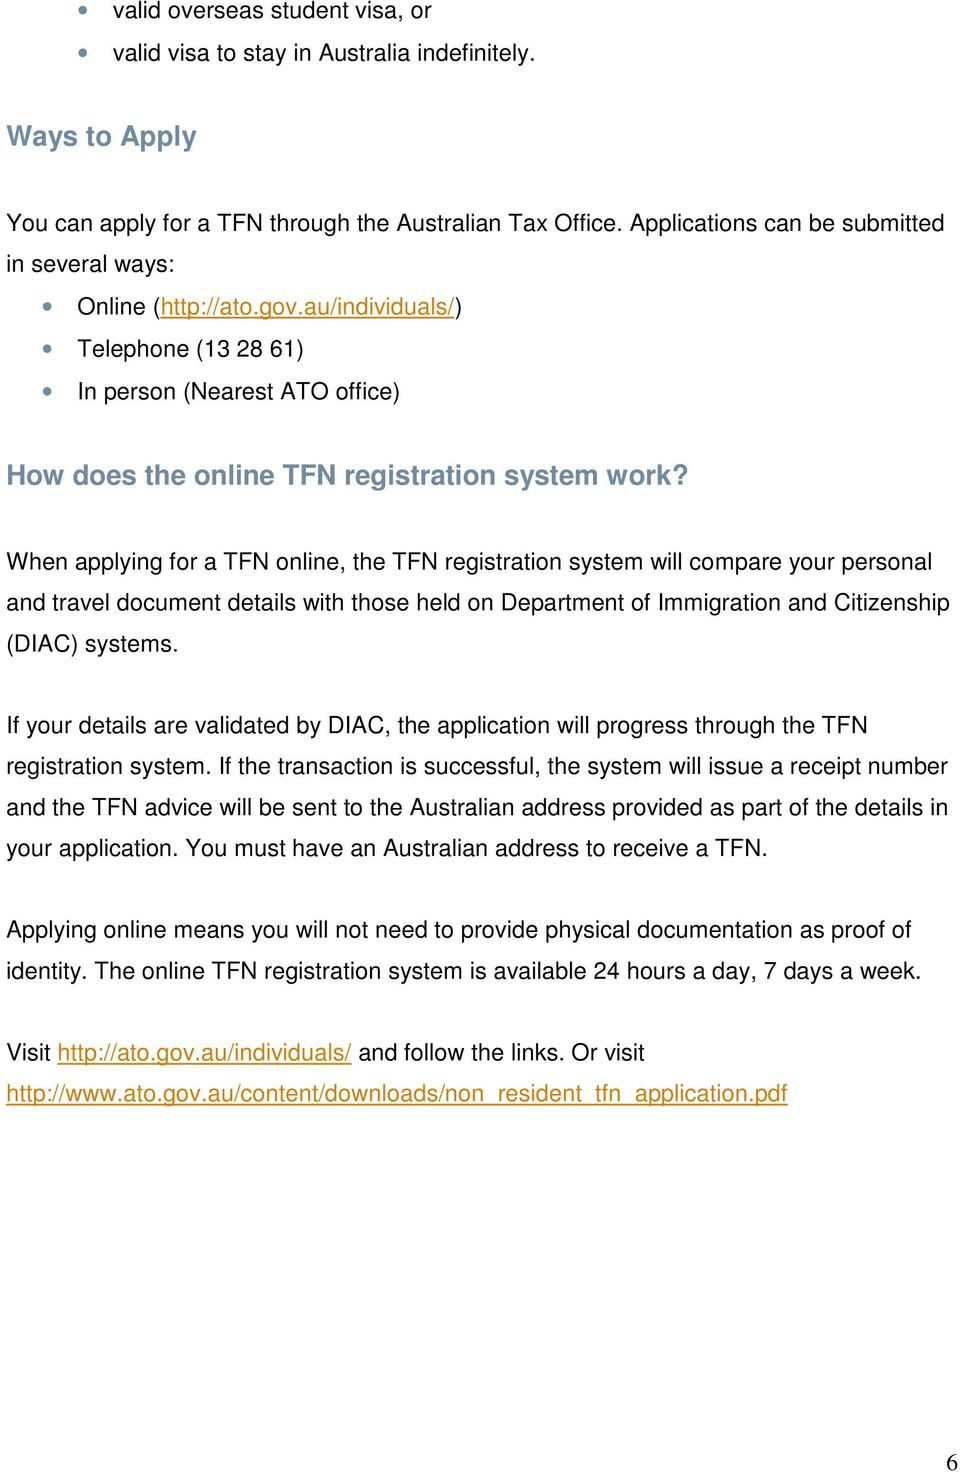 Welcome To The Ramsay Health Care Family Pdf Diac Applications When Applying For A Tfn Online Registration System Will Compare Your Personal And